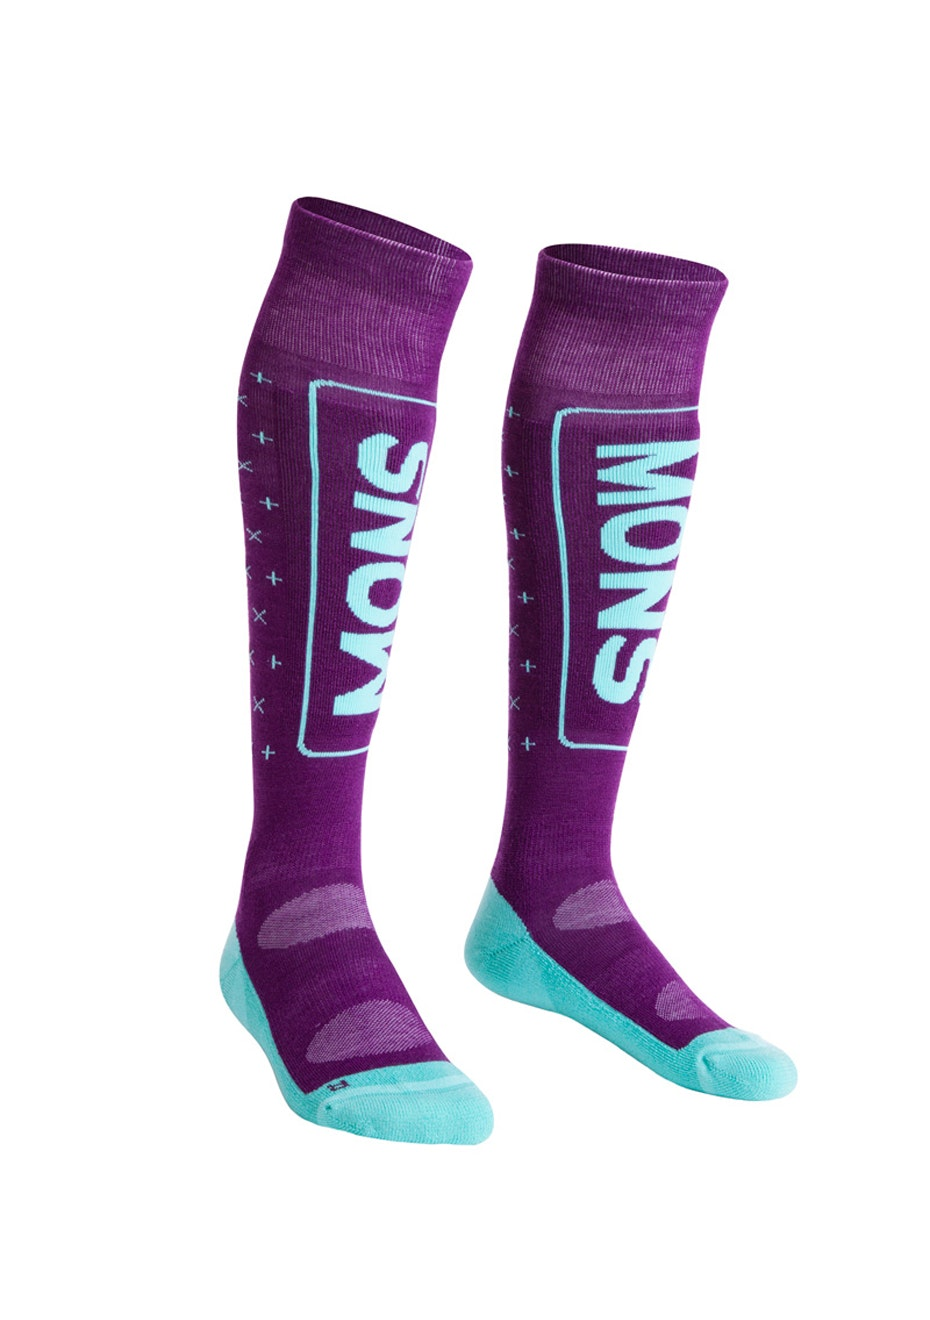 MONS ROYALE - Womens - 3 Pack Mons Snow Tech Sock - Pinot / Mint